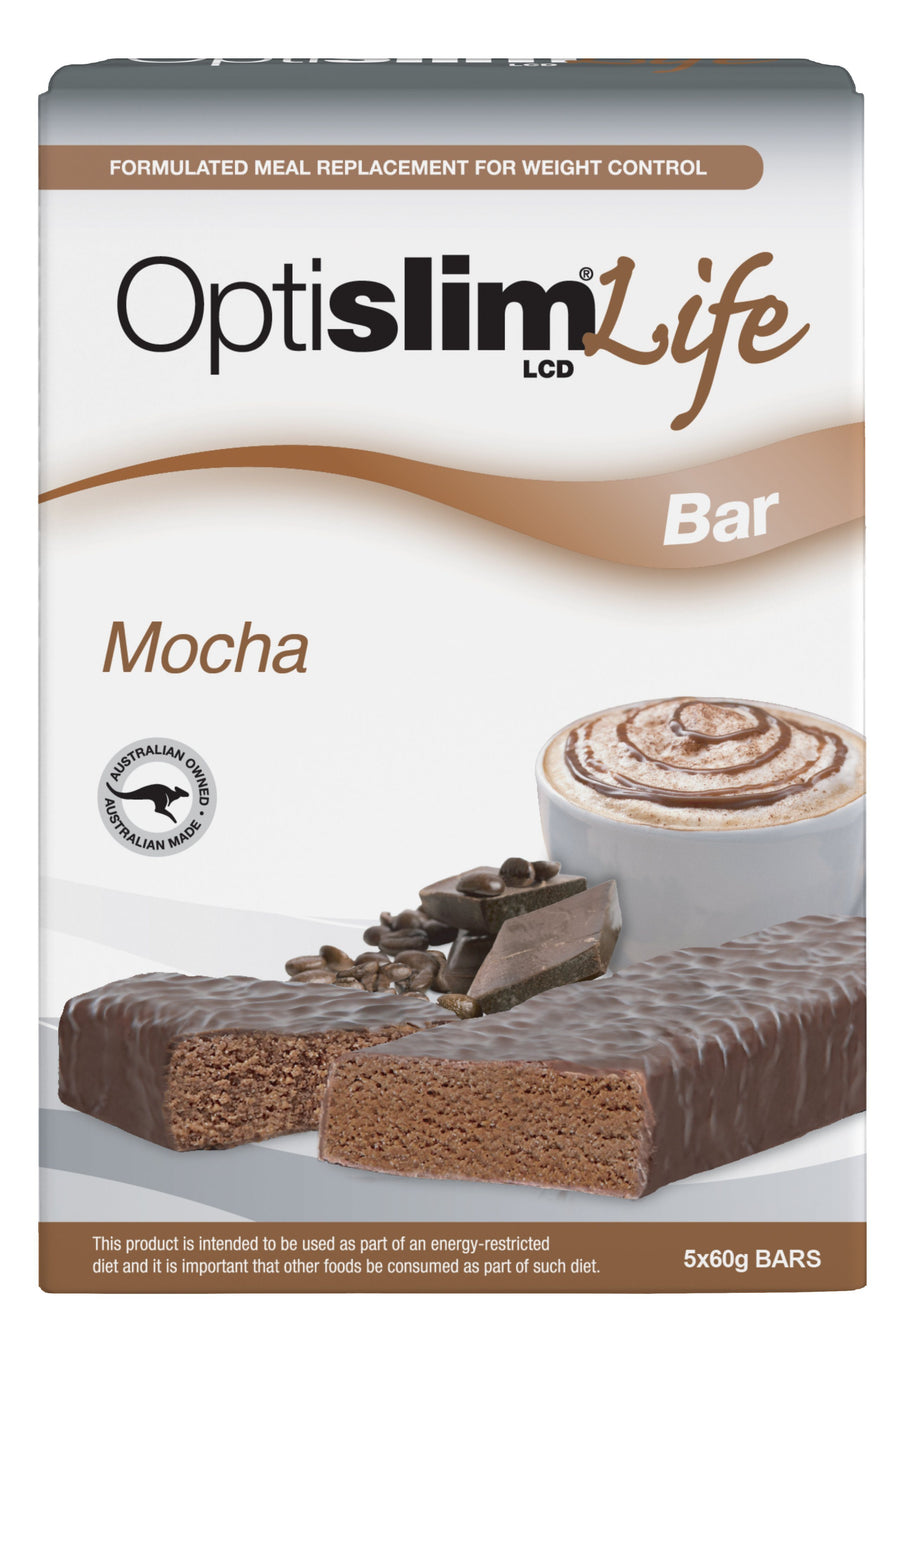 Optislim Life LCD Bar Mocha(5x60g) Weight Loss OptiSlim